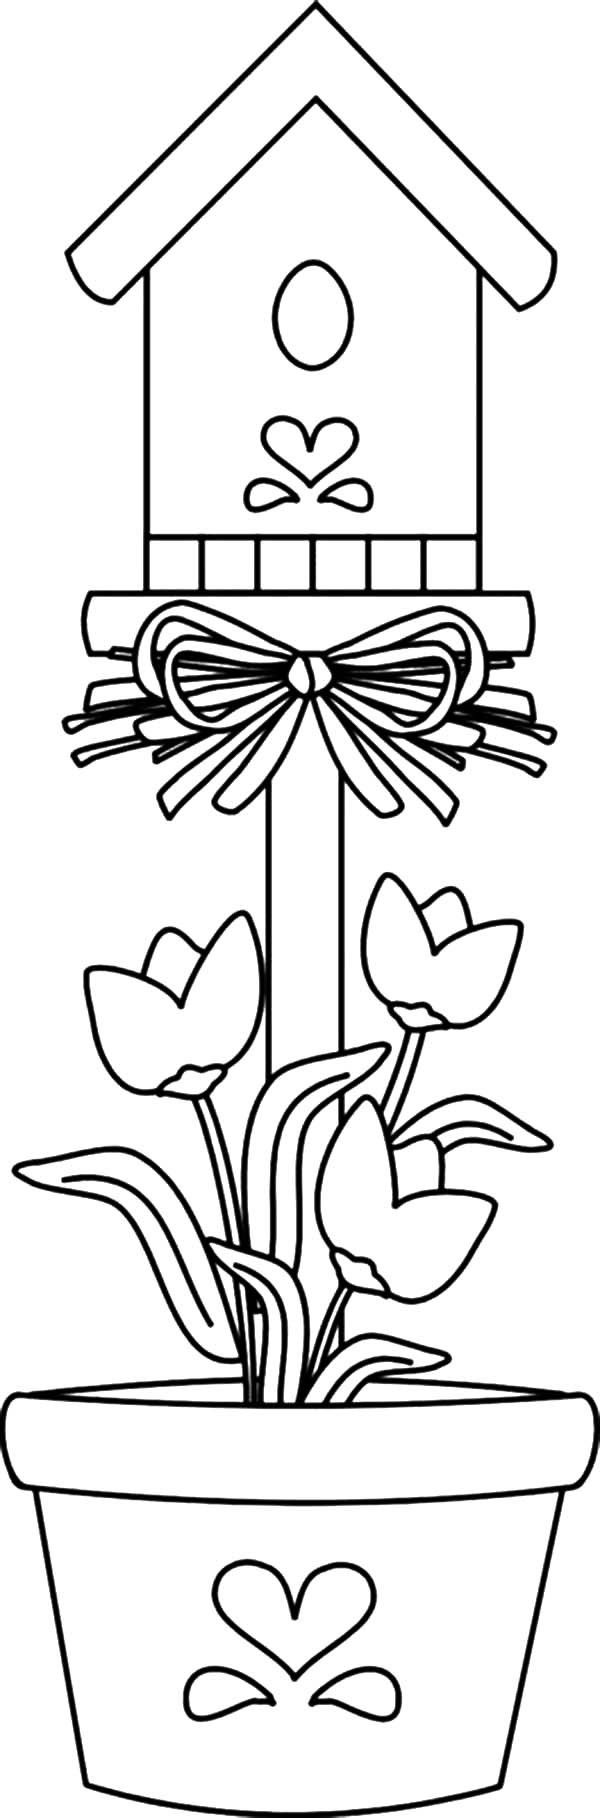 Coloring pages of bird houses high quality coloring pages